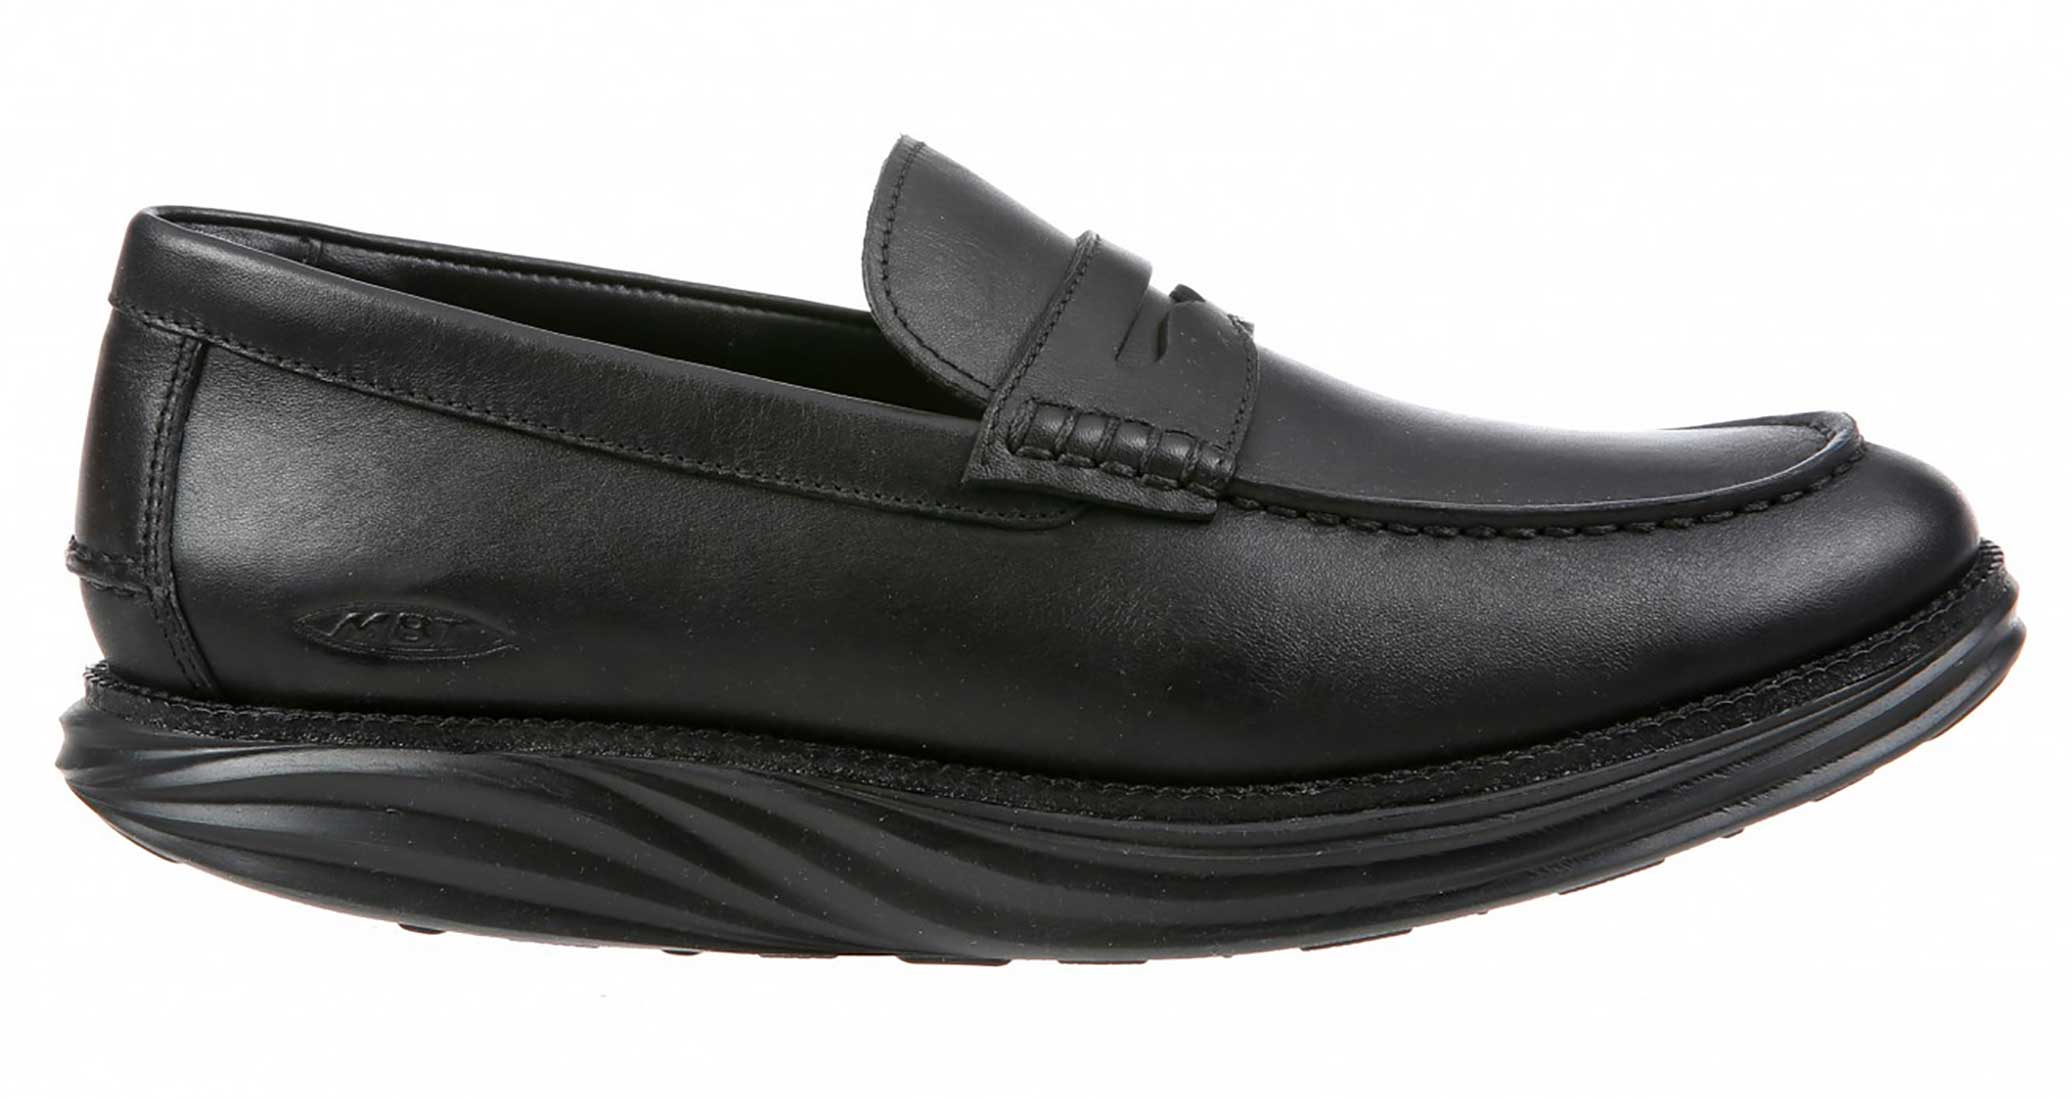 f6d94ee7721a PREVIEWING ICS Active Theme for Mobile: MBT Shoes Men's Boston Dress ...